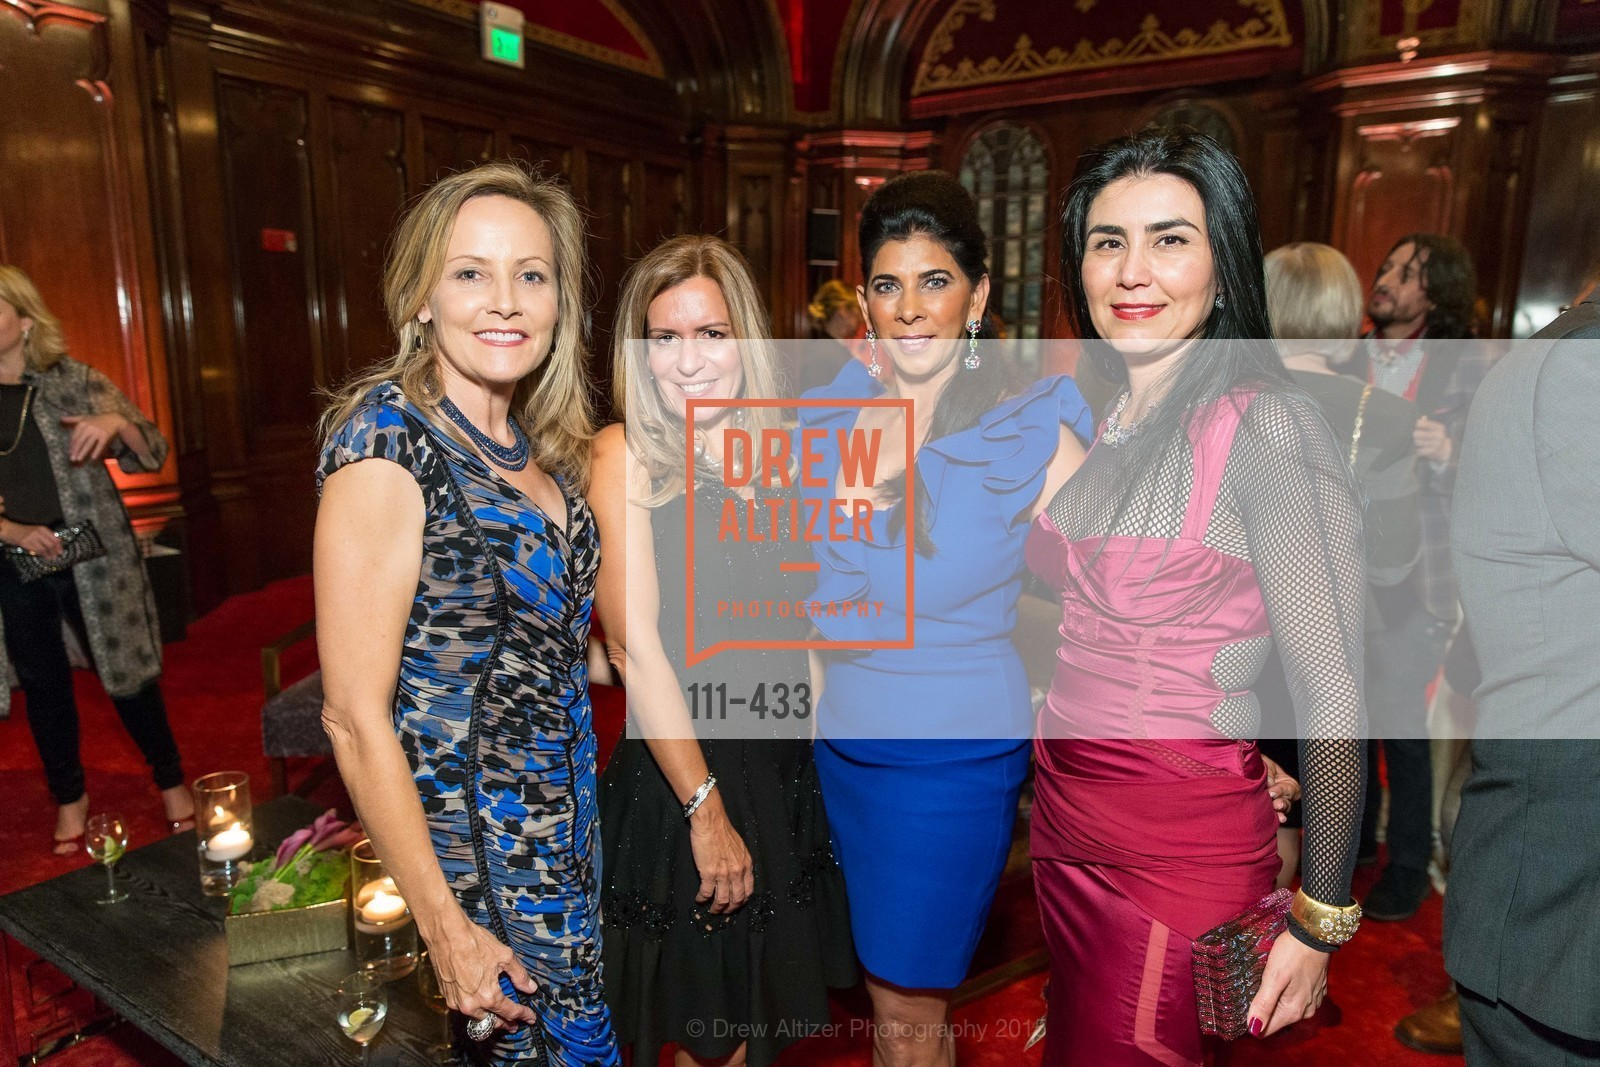 Denise Ivory, Yvette Esserman, Sujata Pherwani, Afsaneh Akhtari, SFMOMA Contemporary Vision Award, Regency Ballroom. 1300 Van Ness, November 3rd, 2015,Drew Altizer, Drew Altizer Photography, full-service agency, private events, San Francisco photographer, photographer california